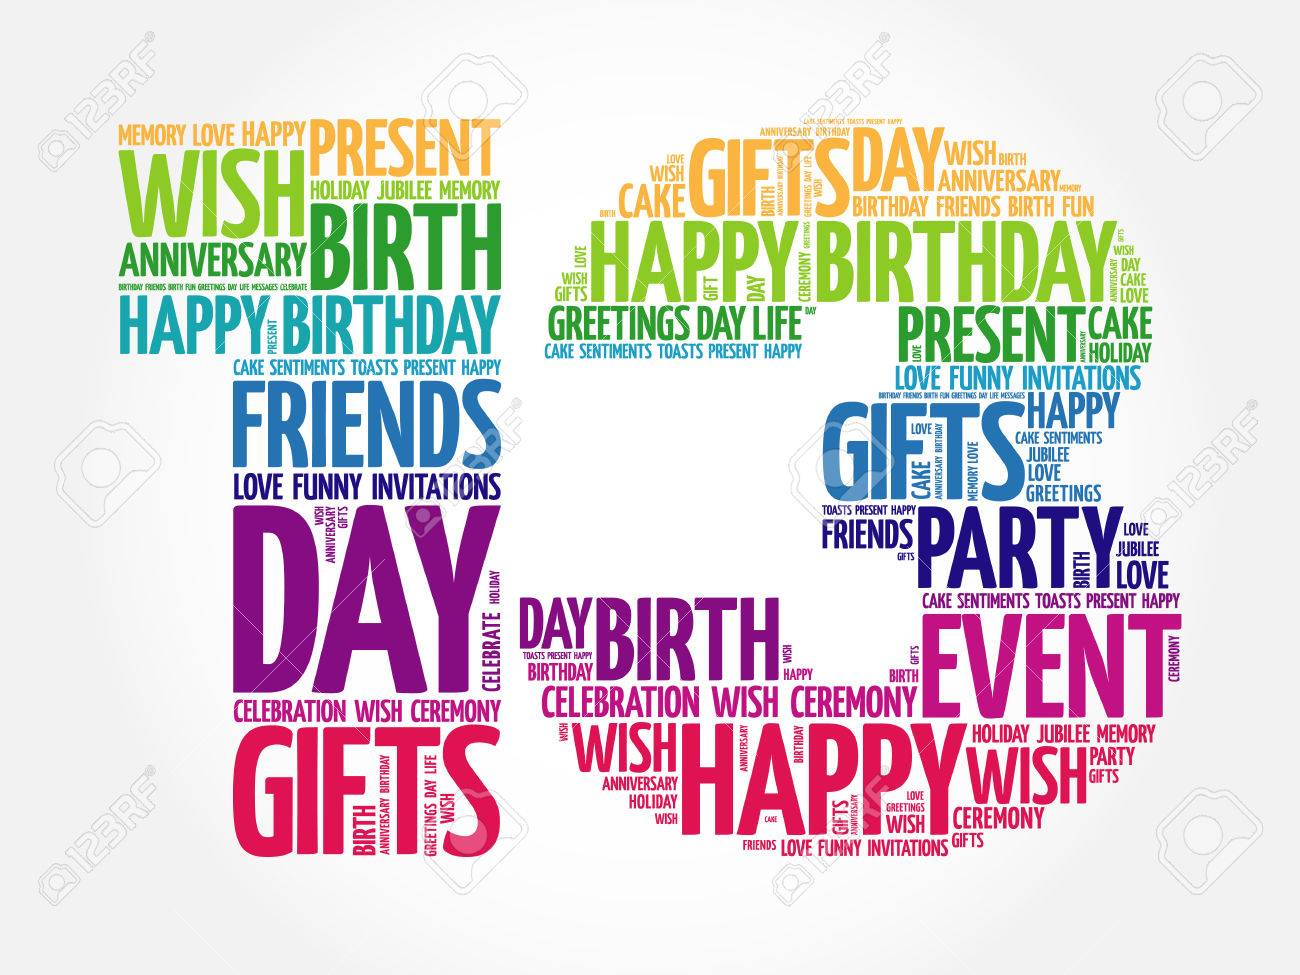 happy 13th birthday word cloud collage concept royalty free cliparts